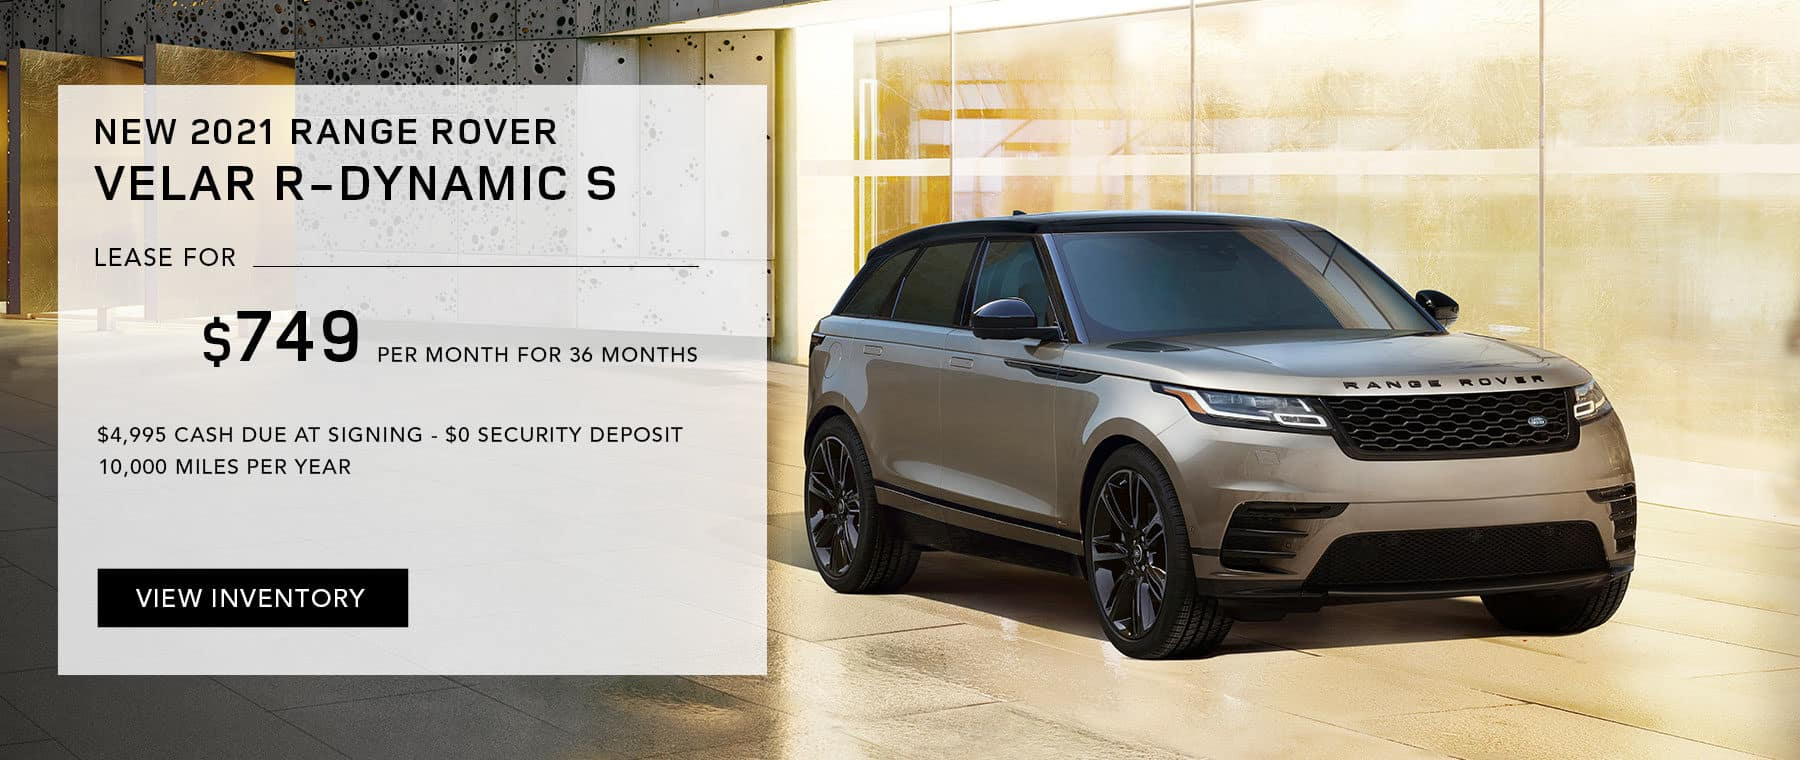 NEW 2021 RANGE ROVER VELAR R-DYNAMIC S. $749 PER MONTH. 36 MONTH LEASE TERM. $4,995 CASH DUE AT SIGNING. $0 SECURITY DEPOSIT. 10,000 MILES PER YEAR. EXCLUDES RETAILER FEES, TAXES, TITLE AND REGISTRATION FEES, PROCESSING FEE AND ANY EMISSION TESTING CHARGE. ENDS 8/31/2021.